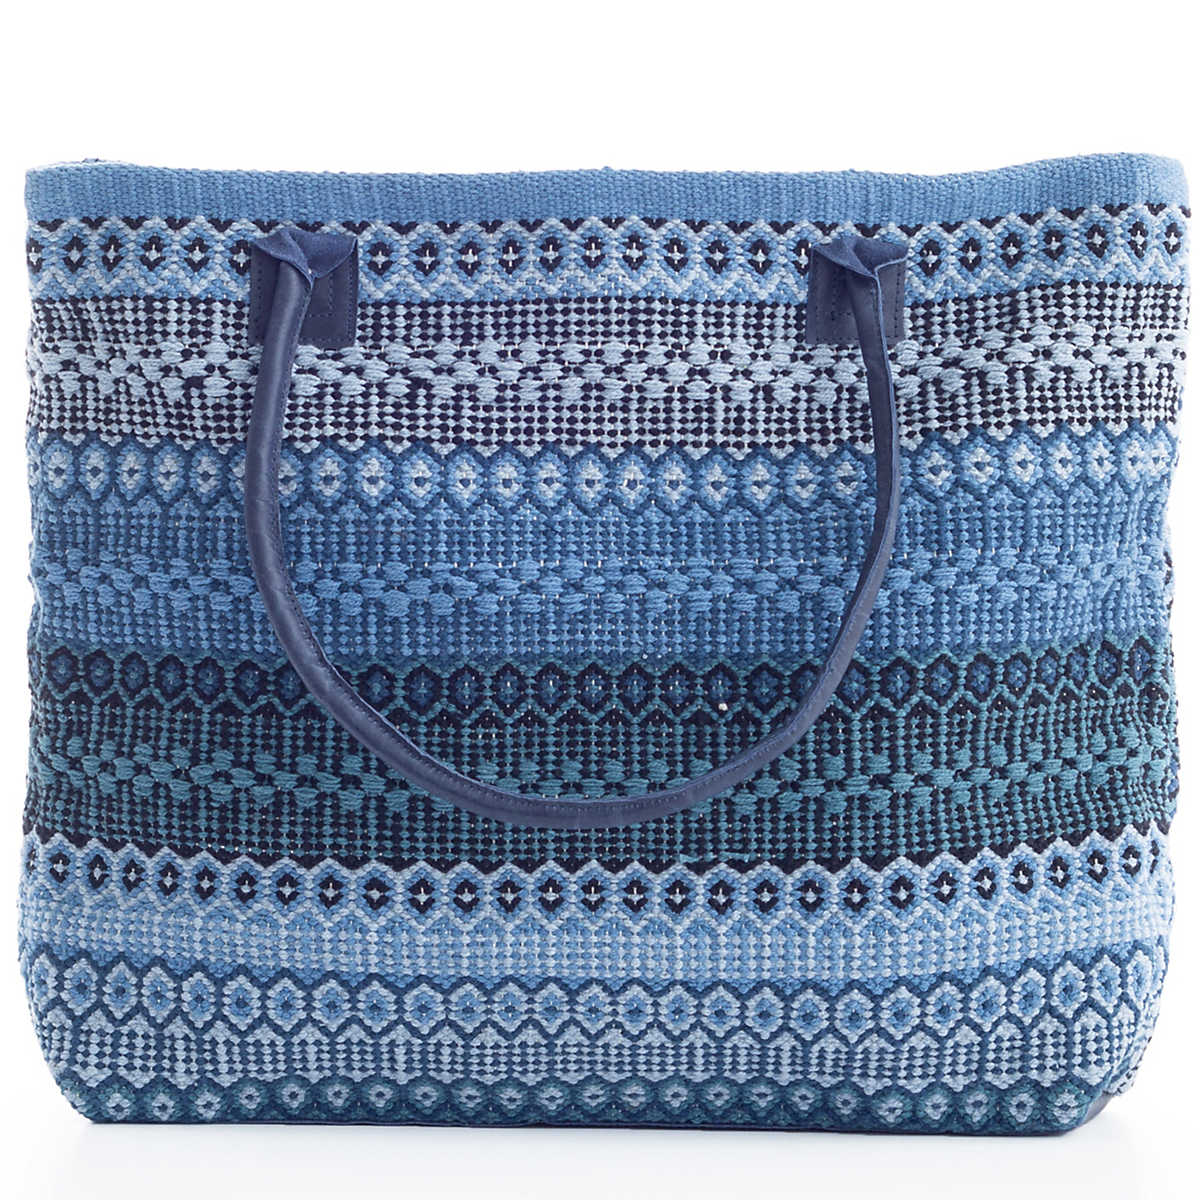 Gypsy Stripe Denim Navy Woven Cotton Tote Bag Dash Amp Albert